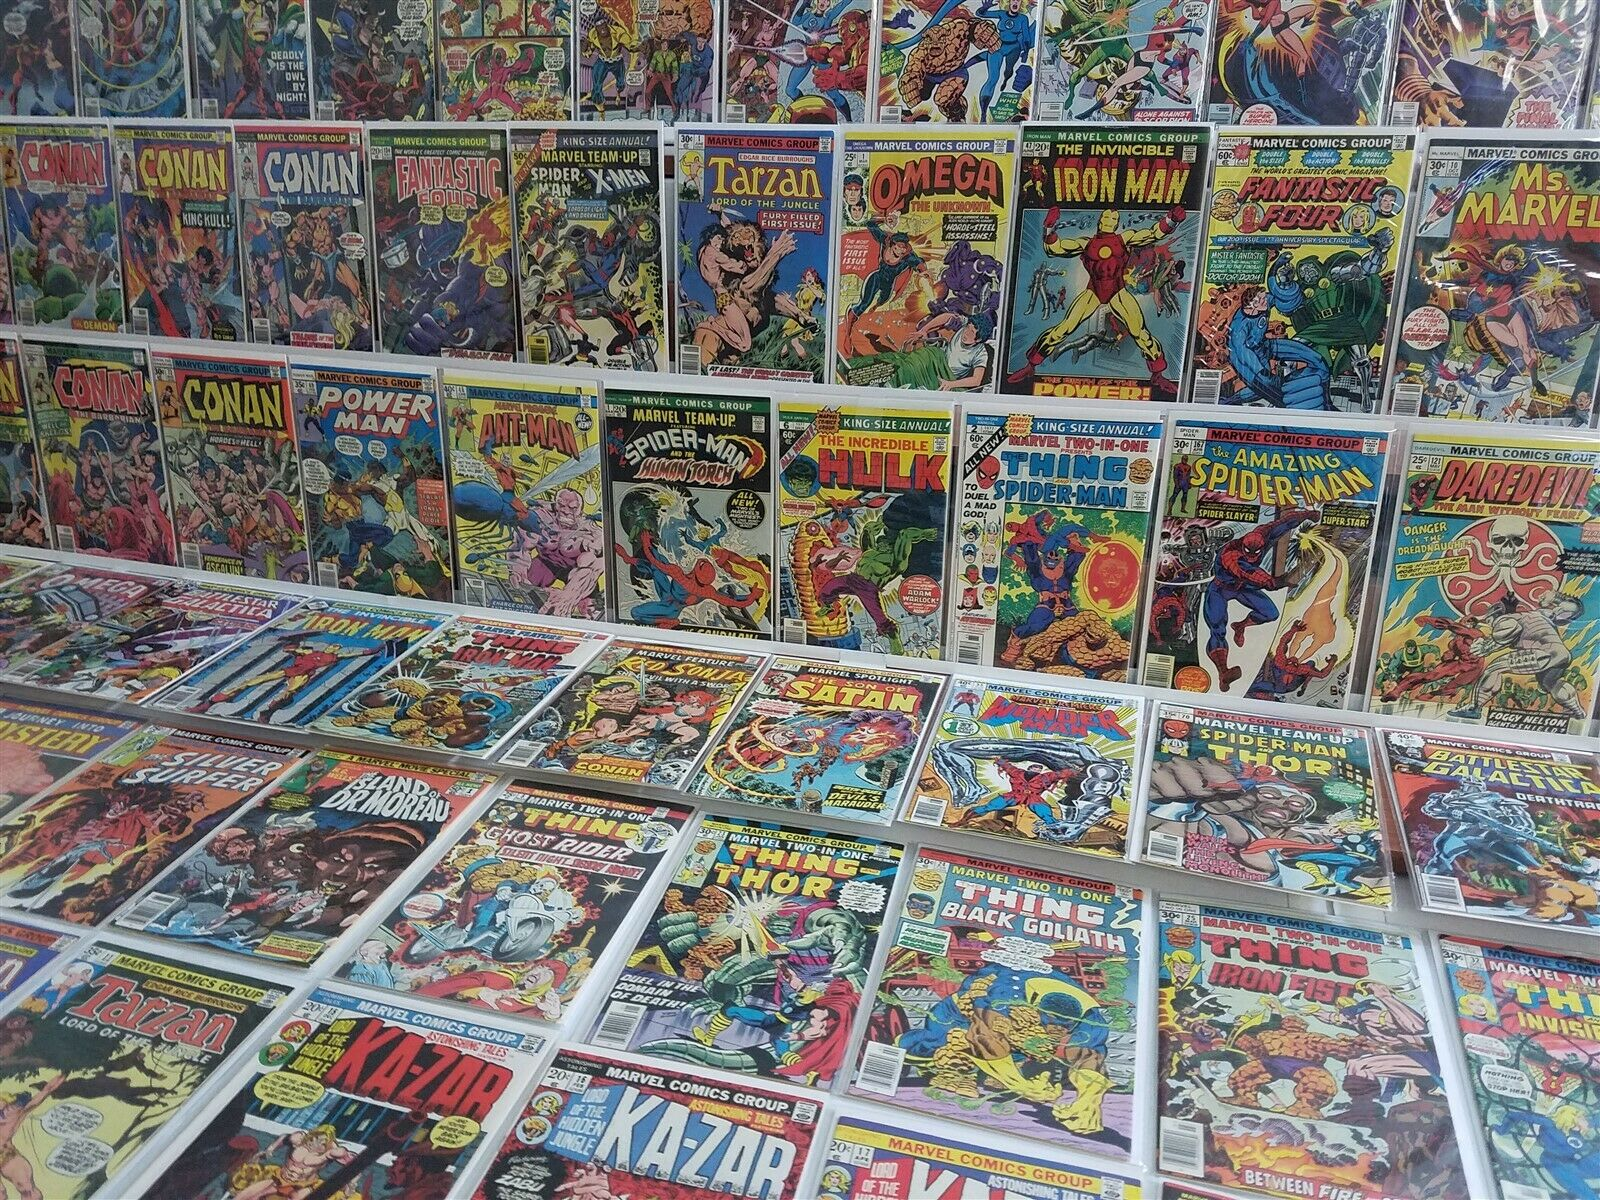 100 HI GRADE Marvel Bronze Lot Two-in-One Annual 2 Team-Up 1 Iron Man 47